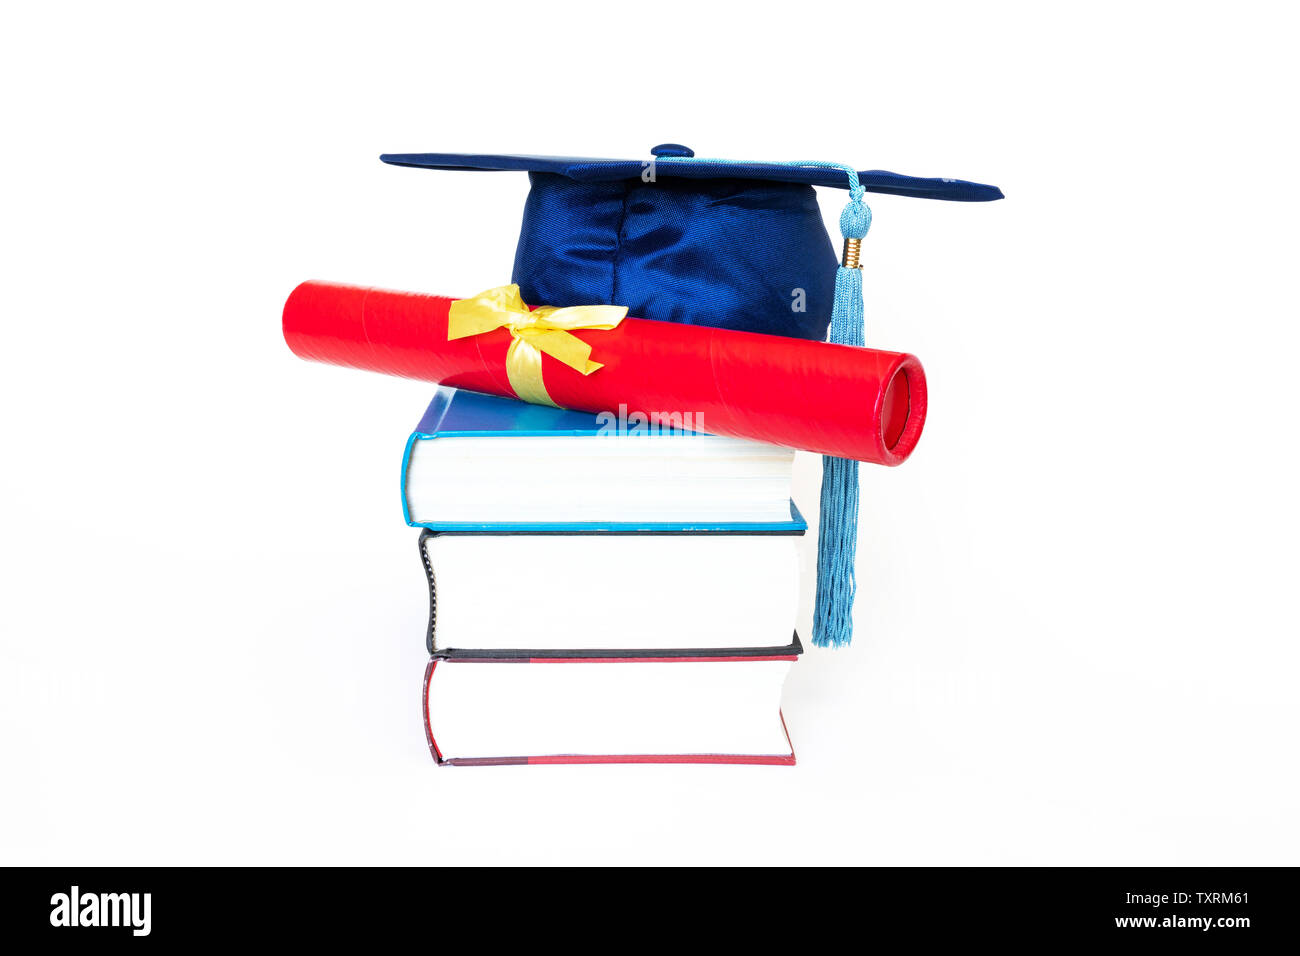 Blue graduation cap with diploma in case on top of books isolated on white background. Education concept. - Stock Image